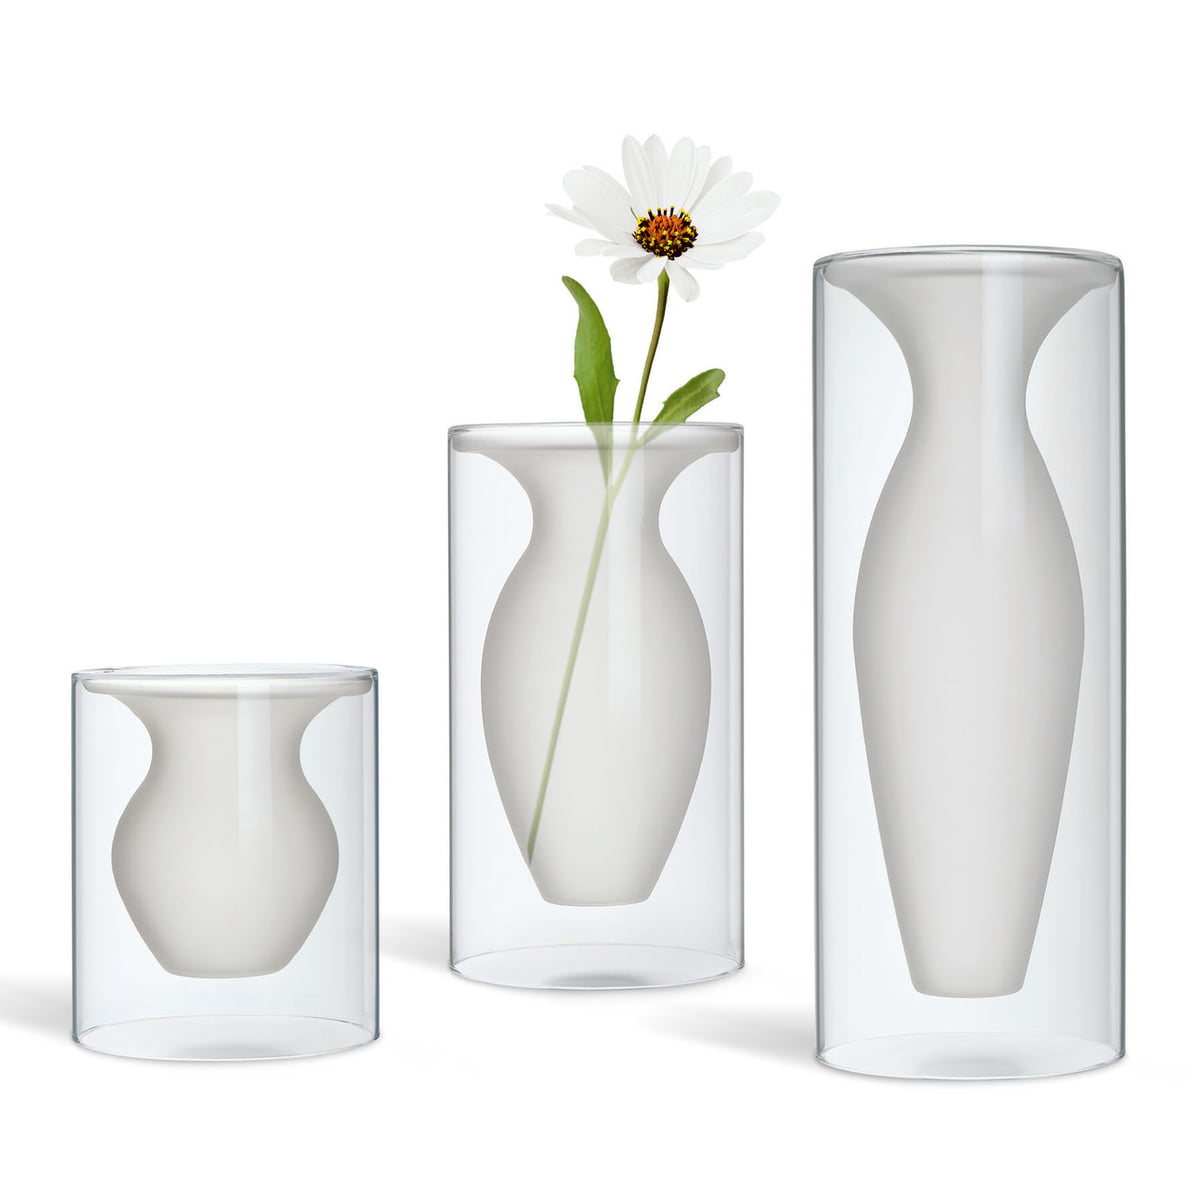 Esmeralda Vase by Philippi in the shop on ls flower, sd flower, vi flower, ca flower, na flower, mn flower, pa flower, va flower, uk flower, dz flower, ve flower, sc flower,